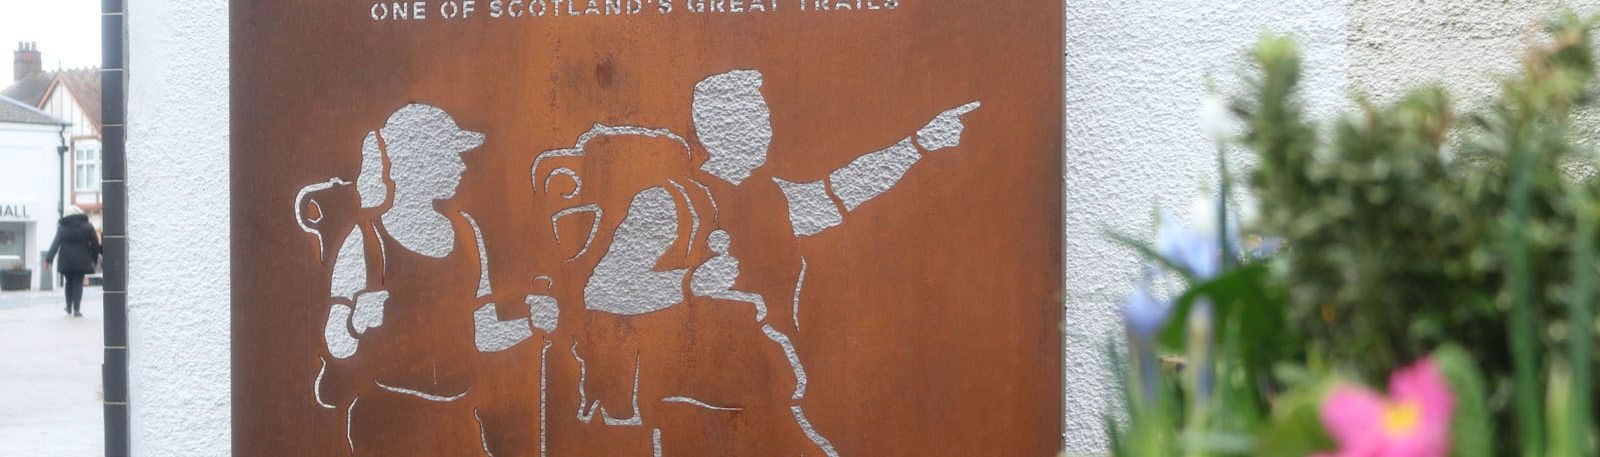 Information about Milngavie. Photo of West Highland Way Walker Outline